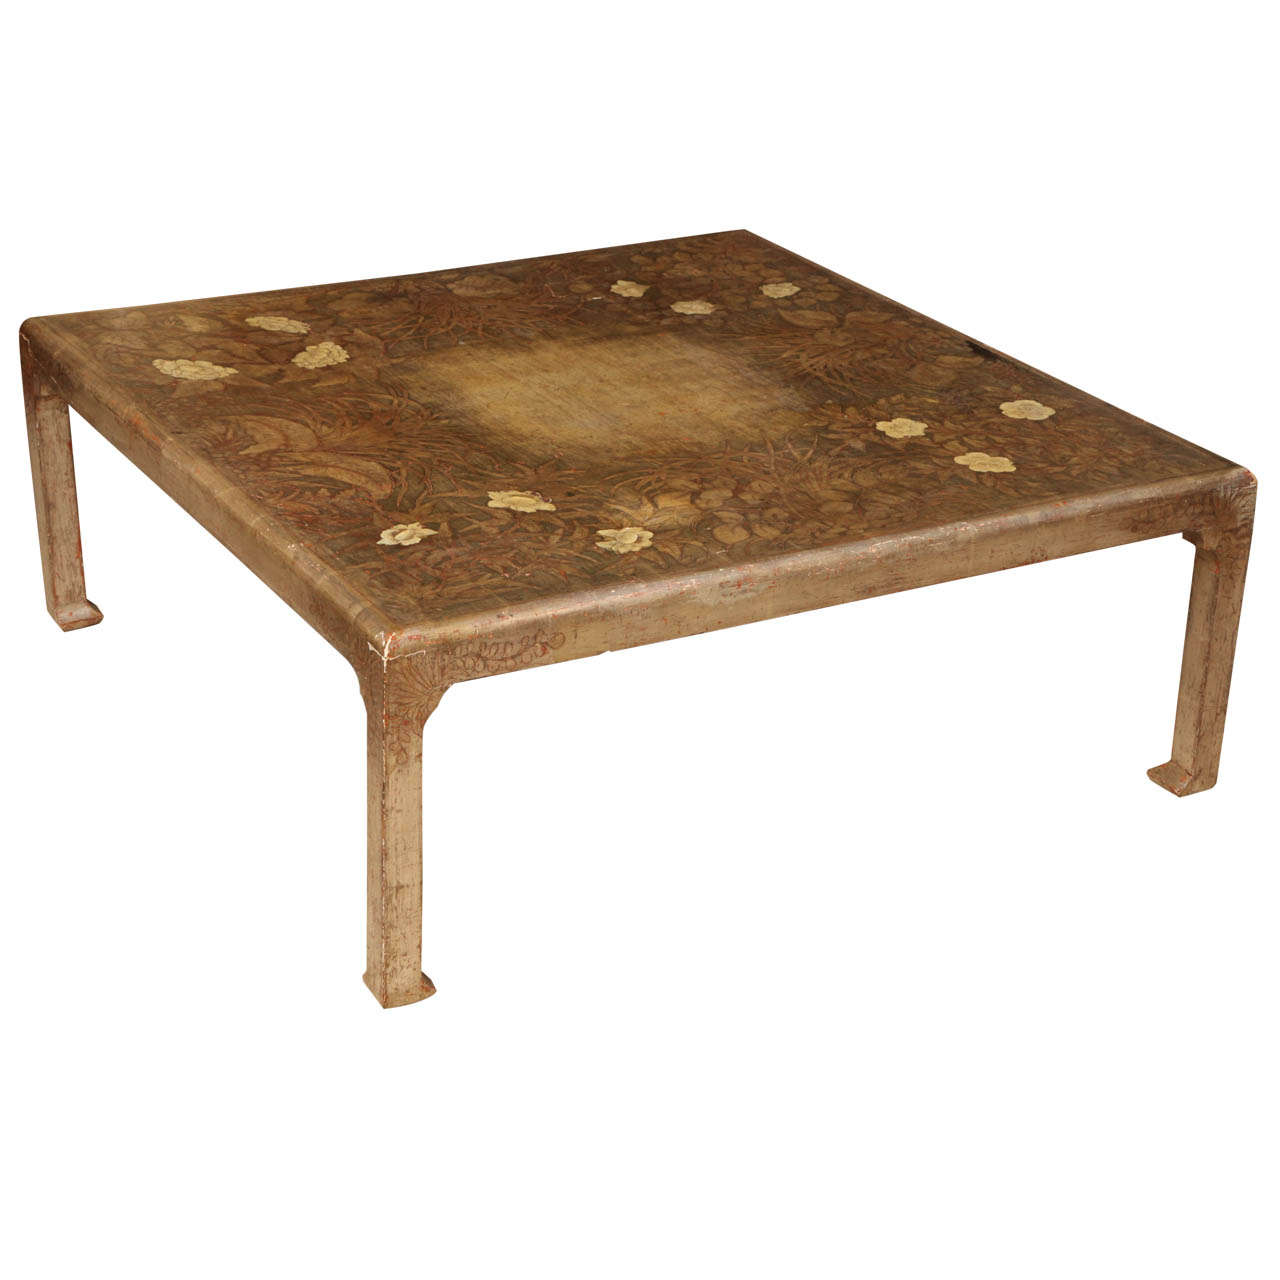 Max kuehne hand painted square low table at 1stdibs Low coffee table square